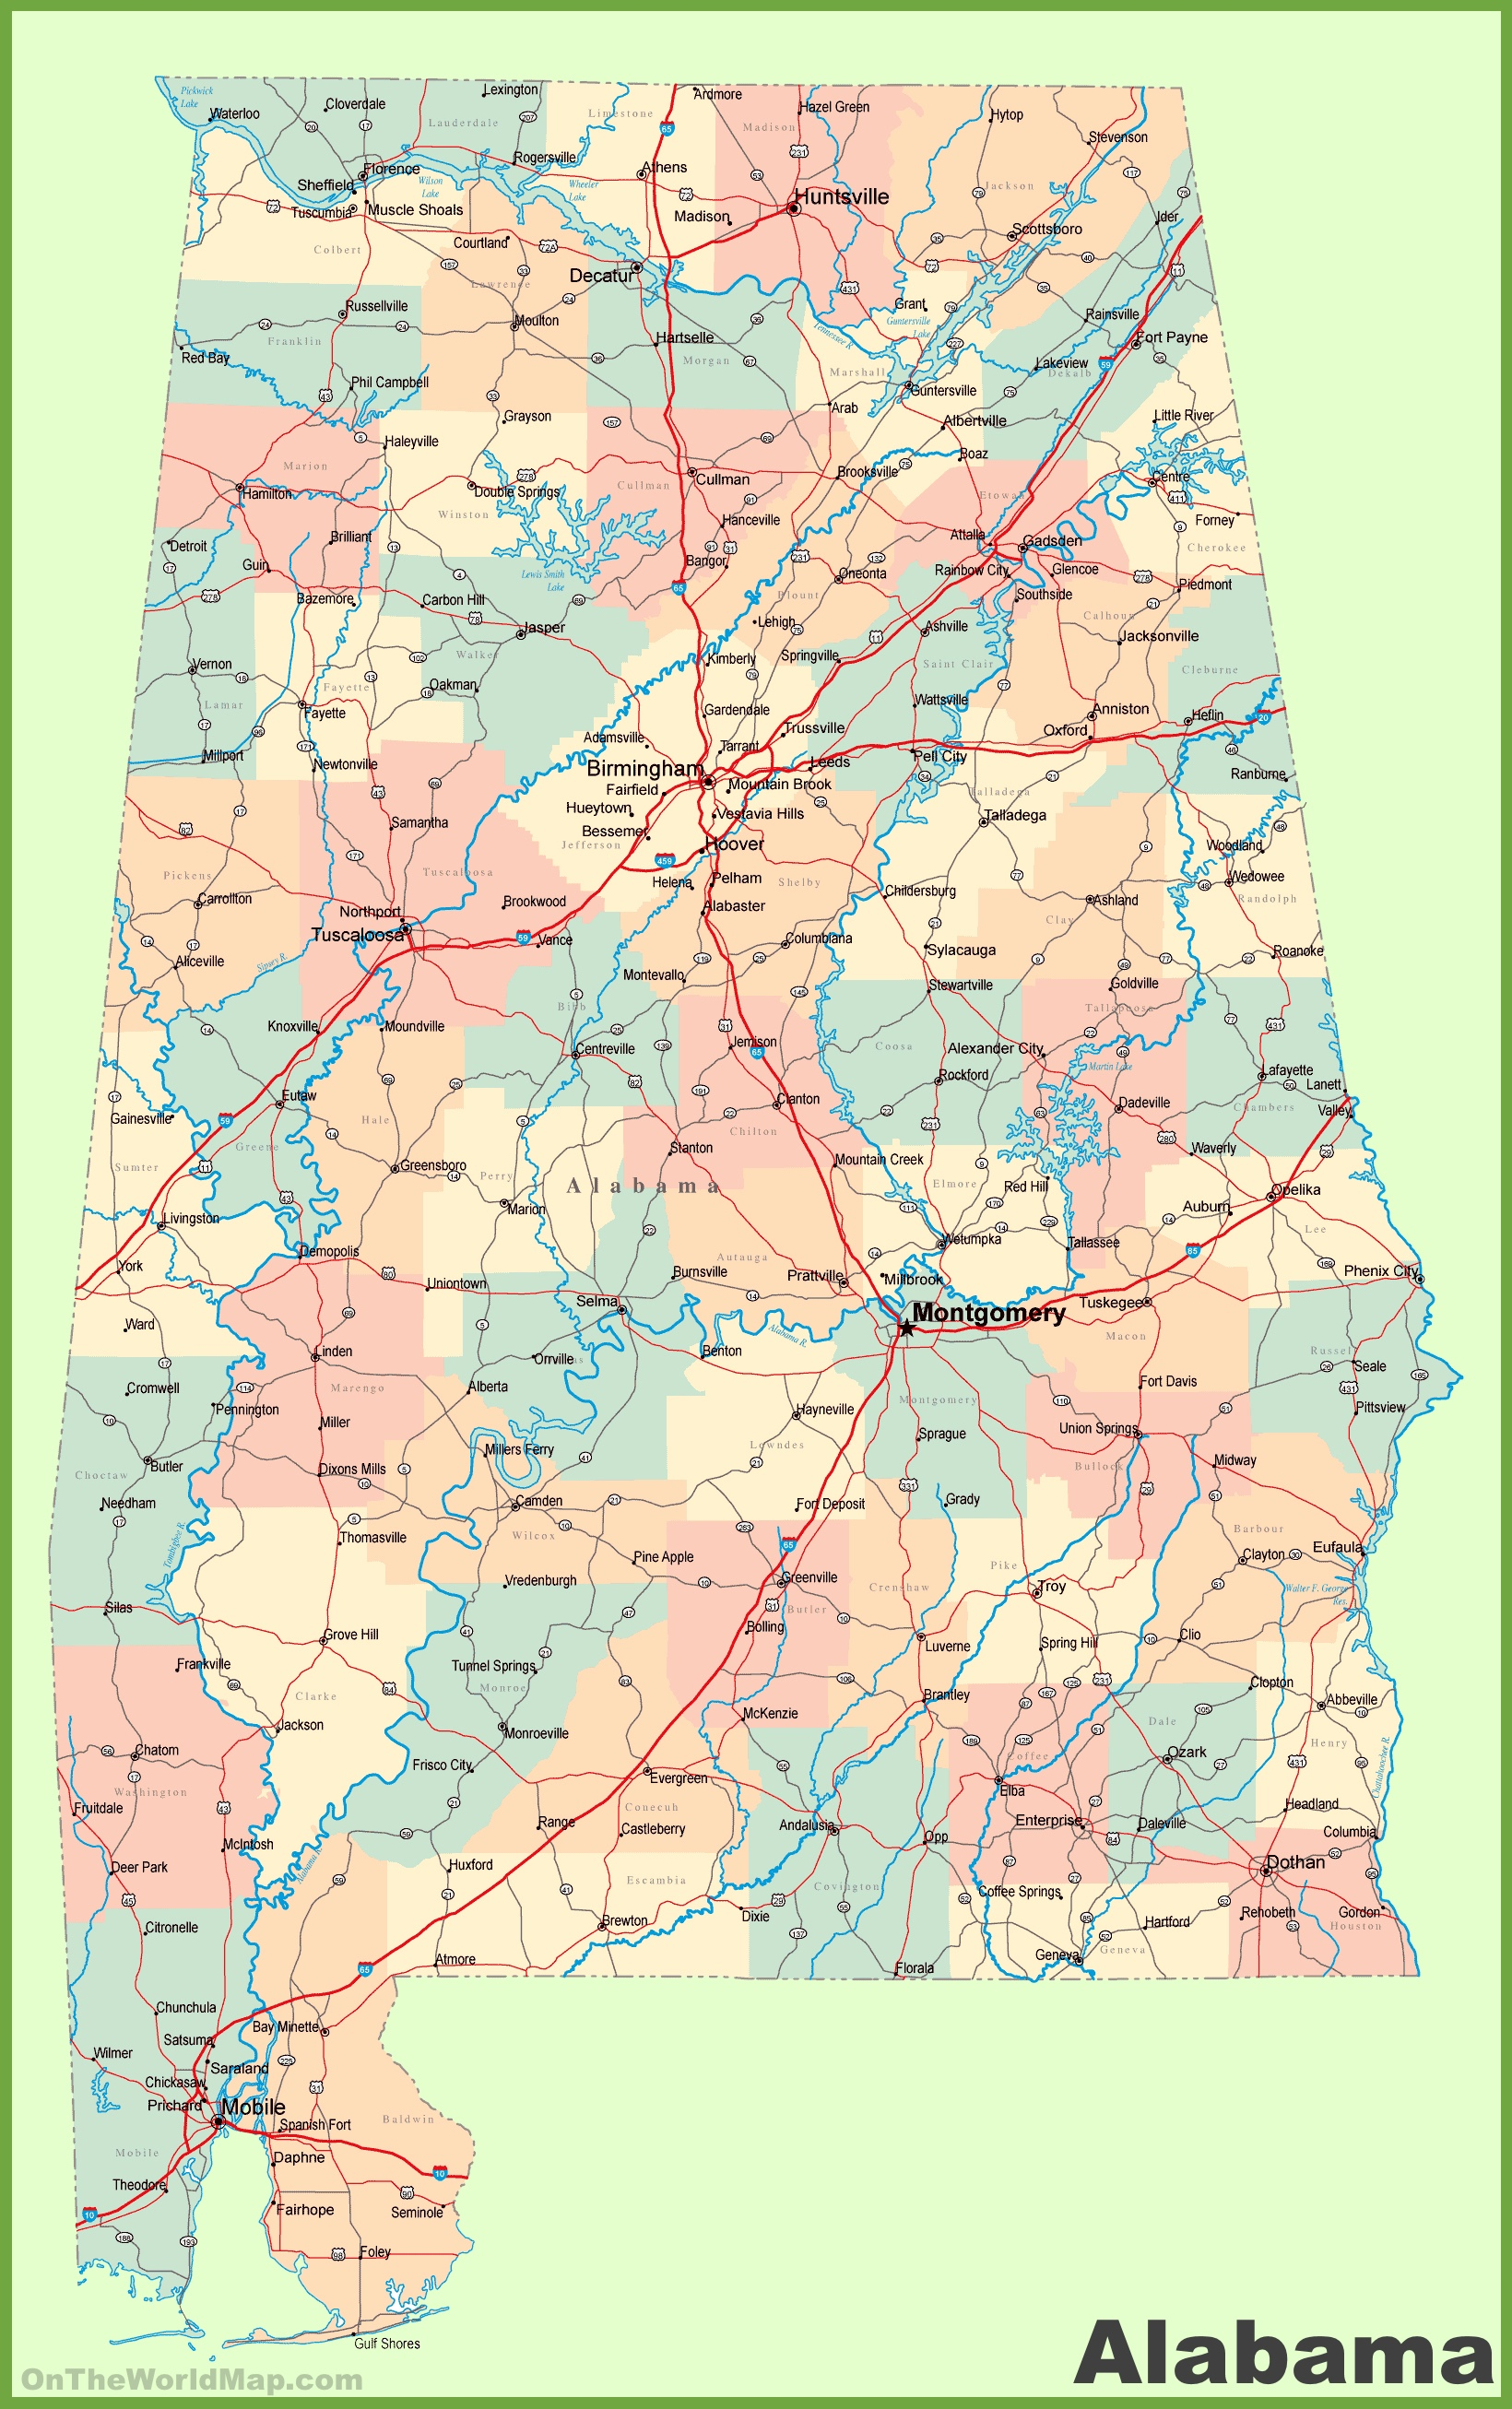 Map Of Alabama With Cities Large detailed map of Alabama